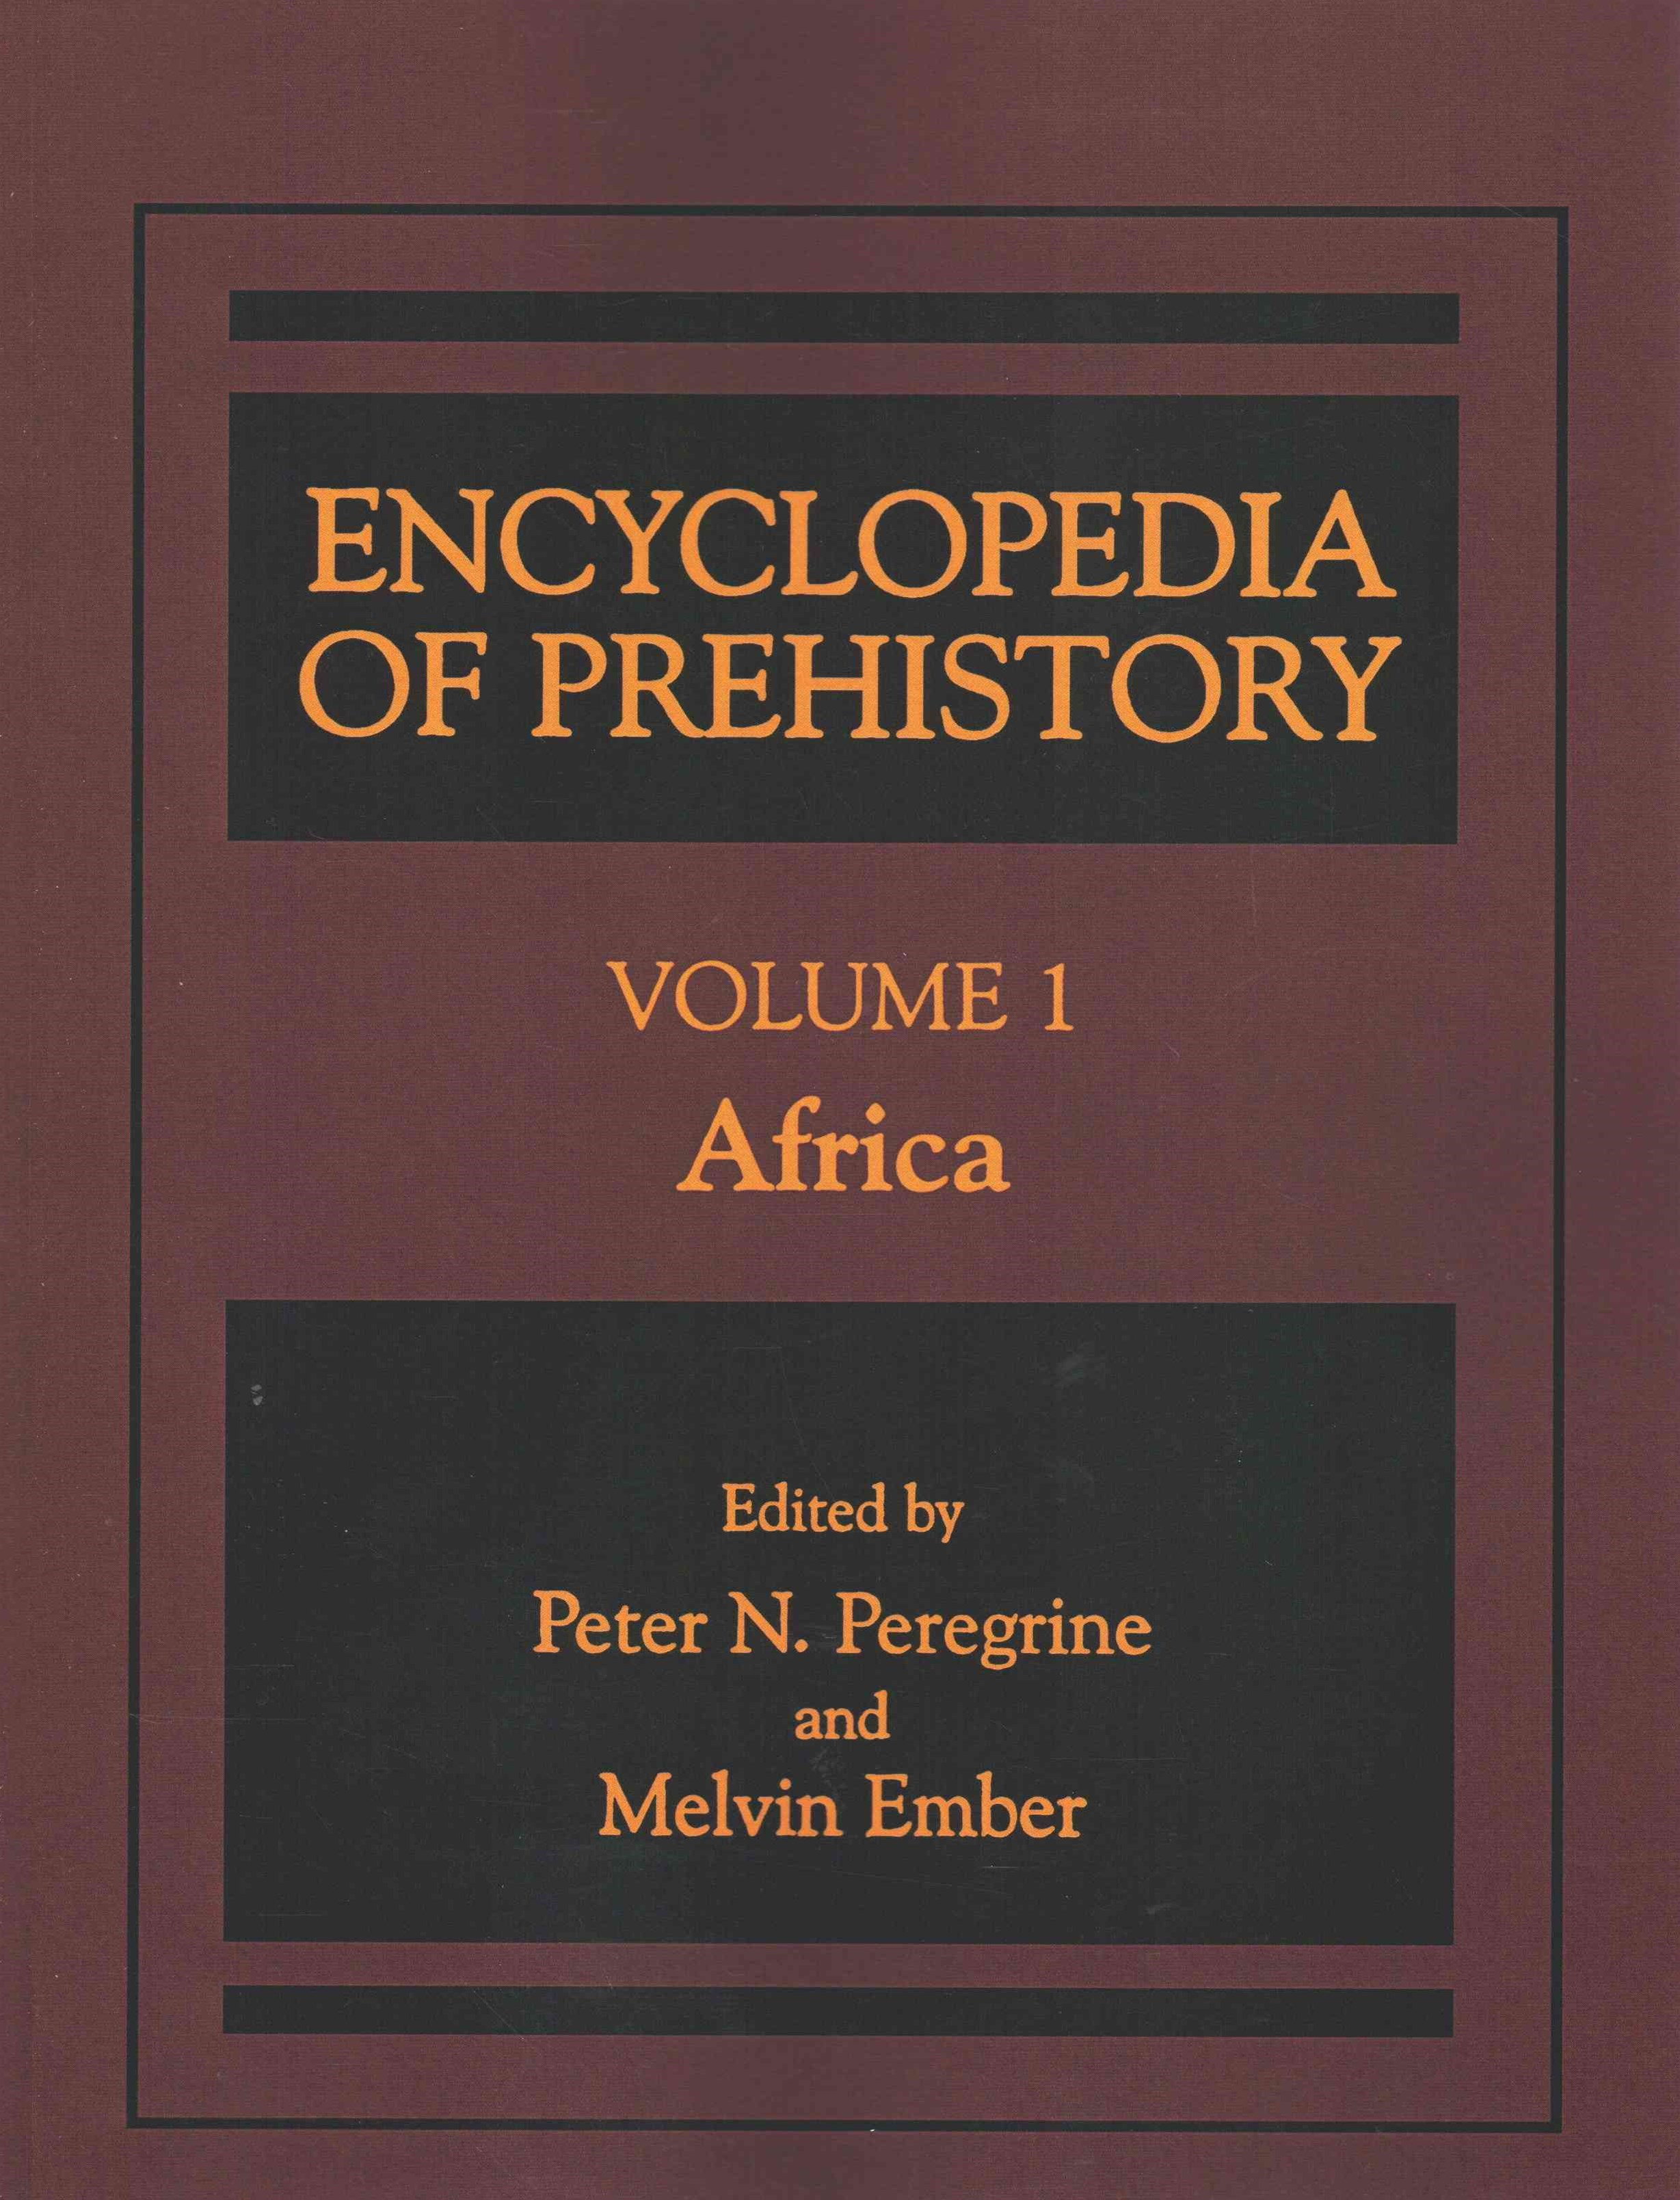 Encyclopedia of Prehistory: Africa